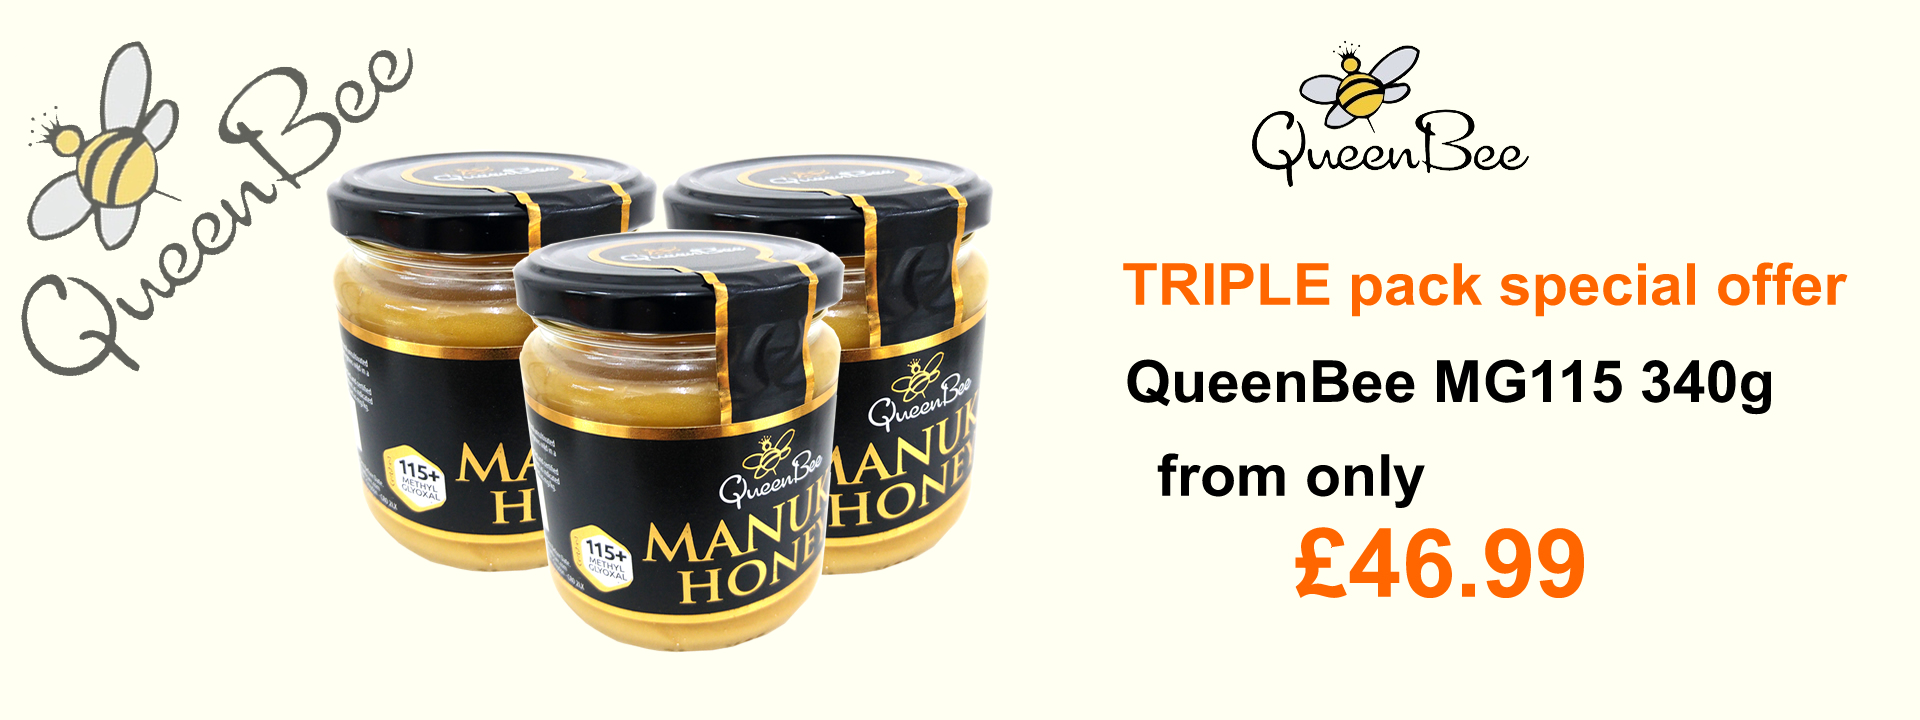 QueenBee Manuka Honey MGO115 340g triple pack now only £46.99